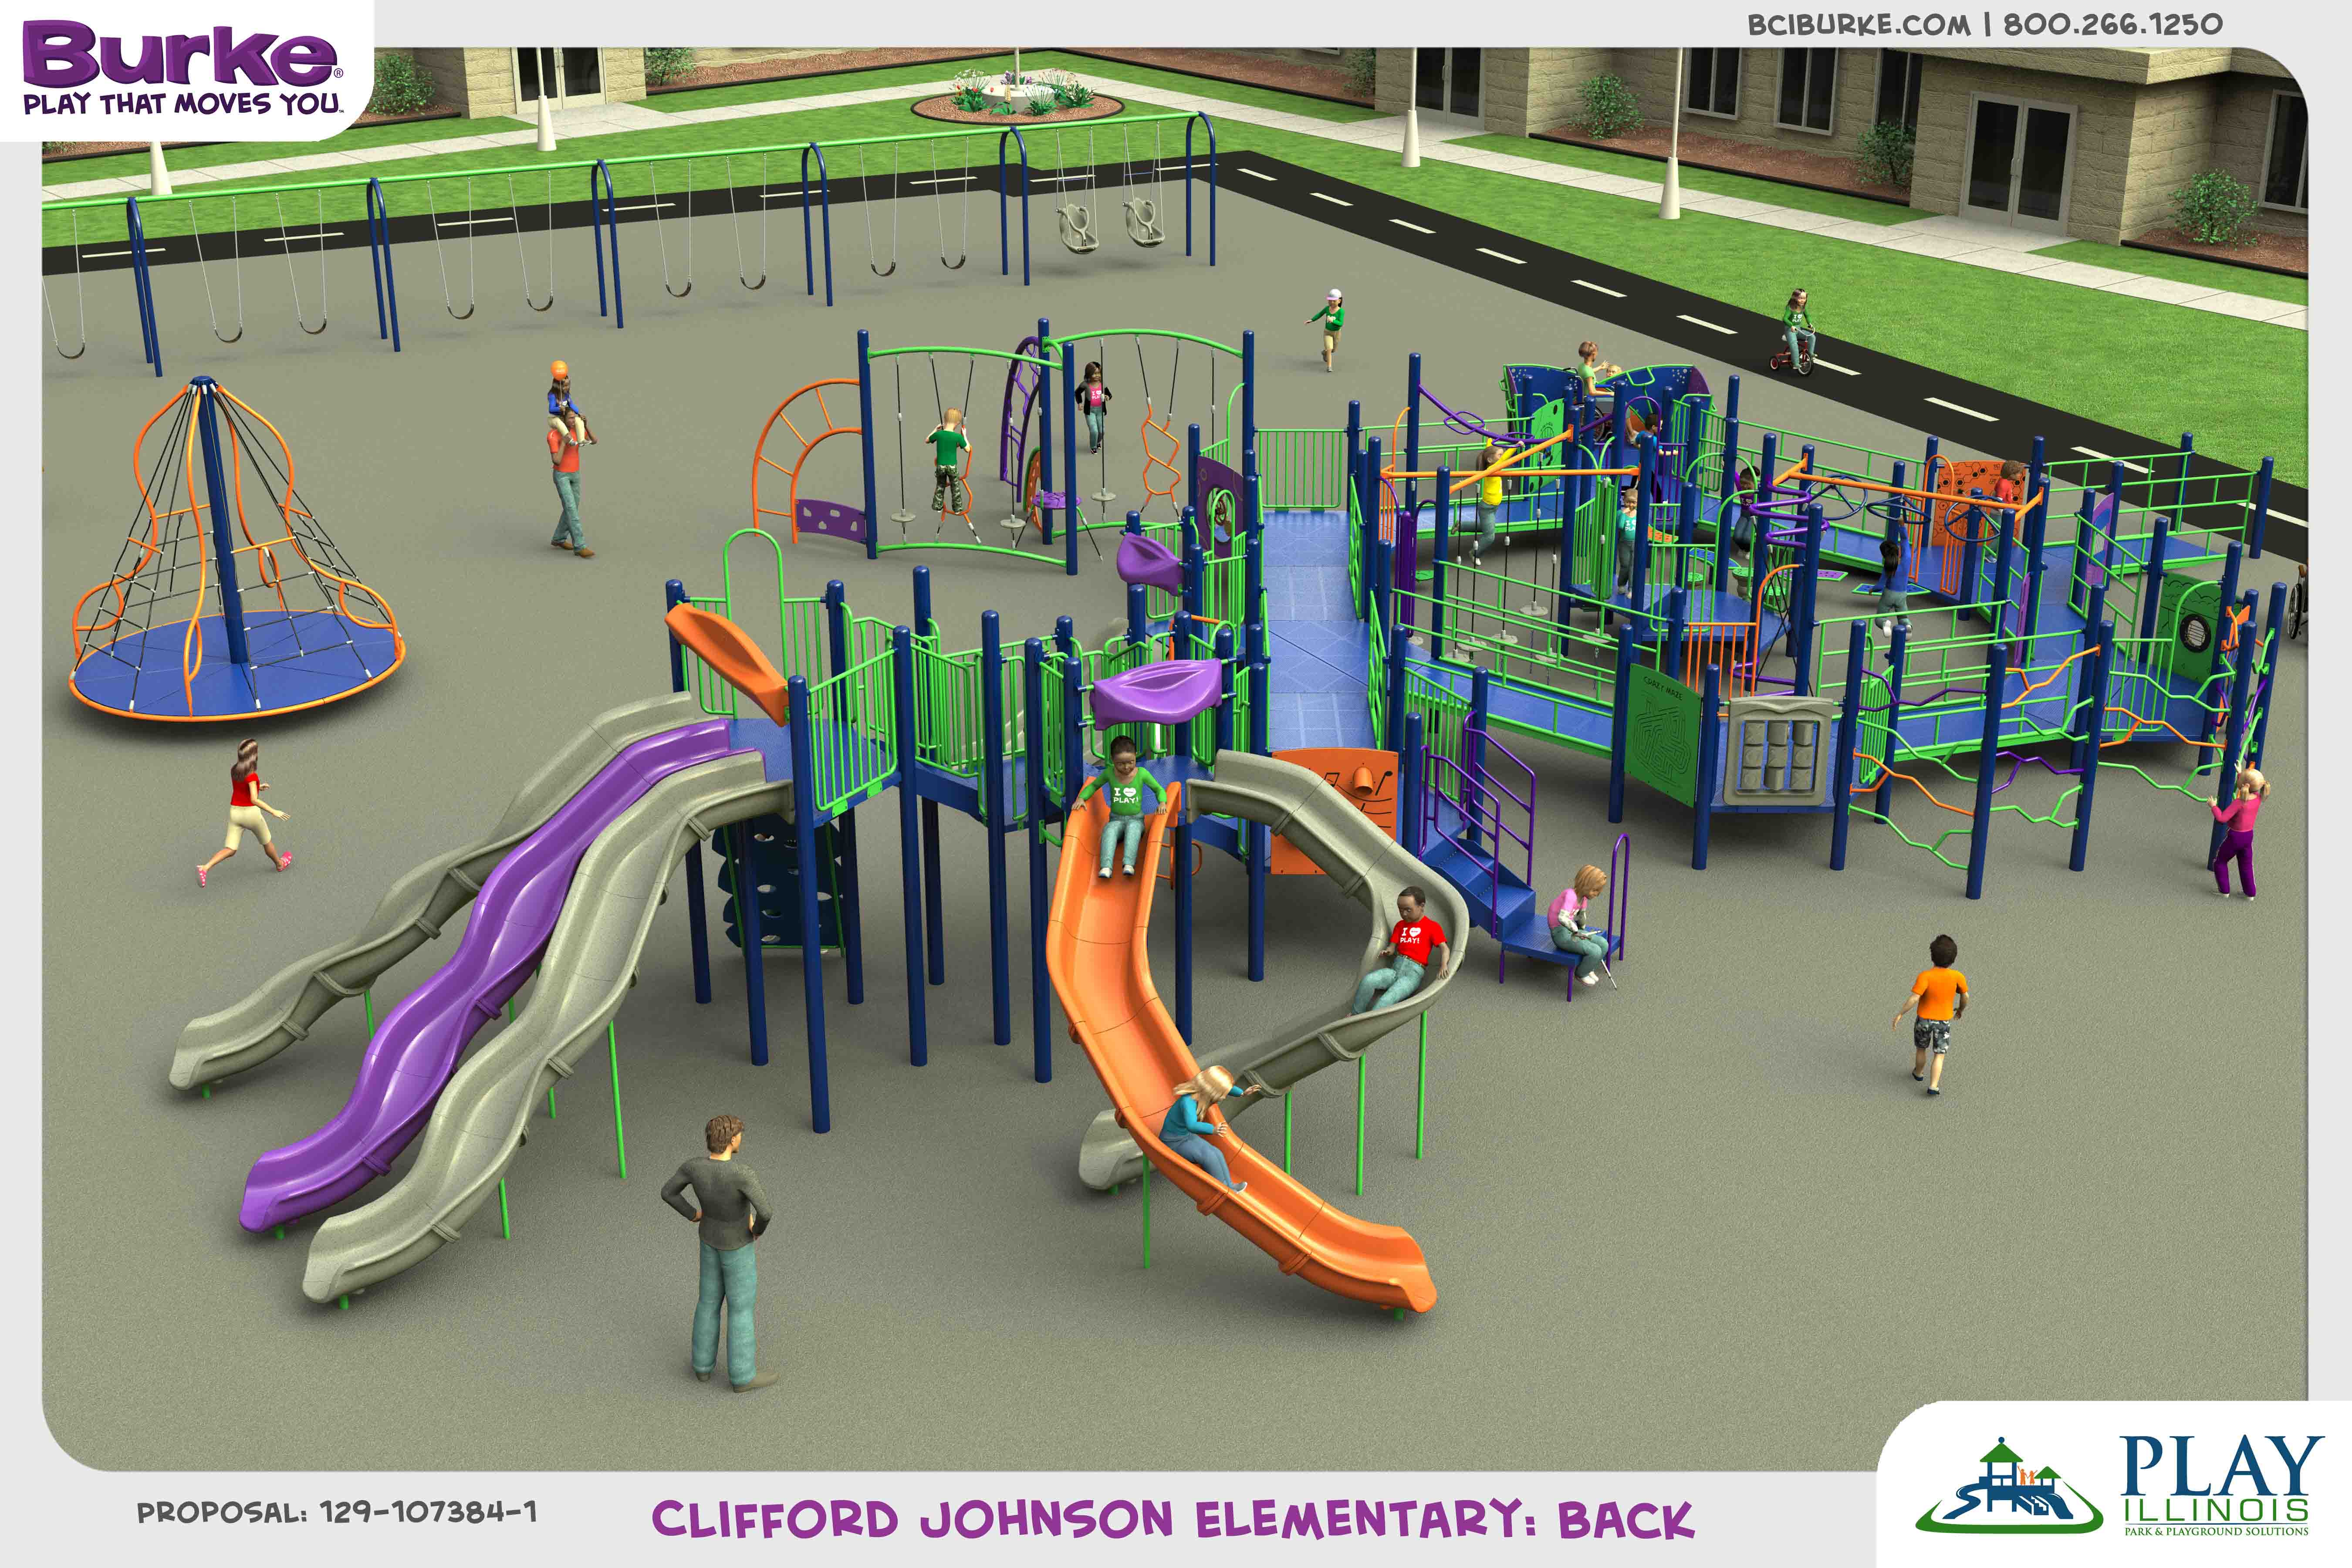 129-107384-1B-copy_MC_CliffordJohnson dream build play experience accessible playgrounds